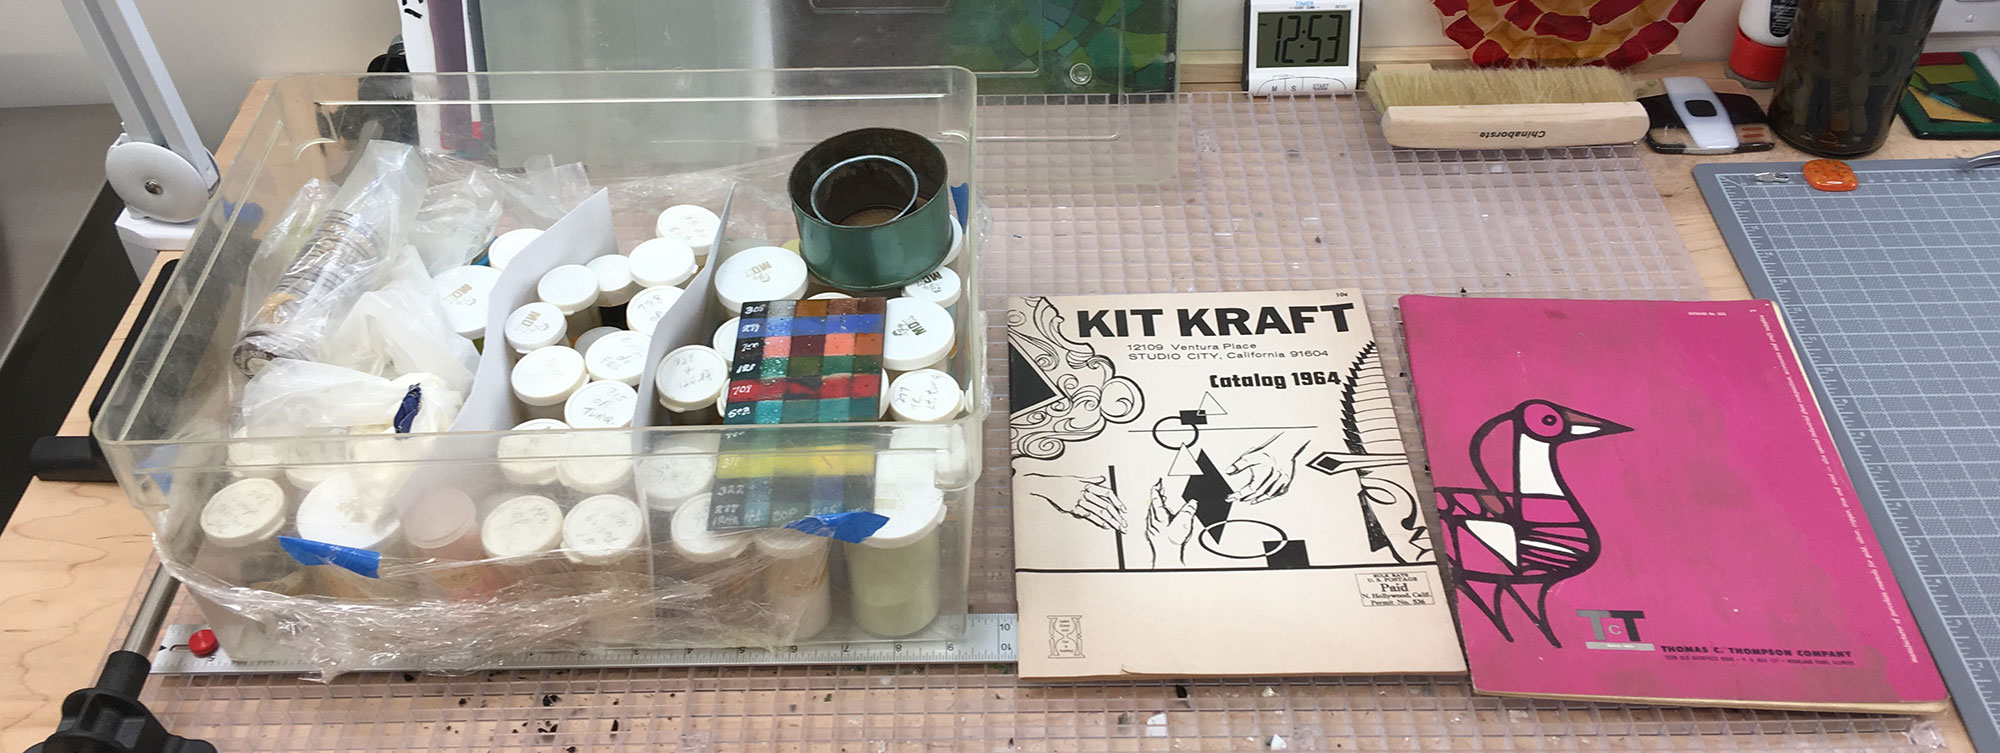 An Enamelers Kit from the 1960s